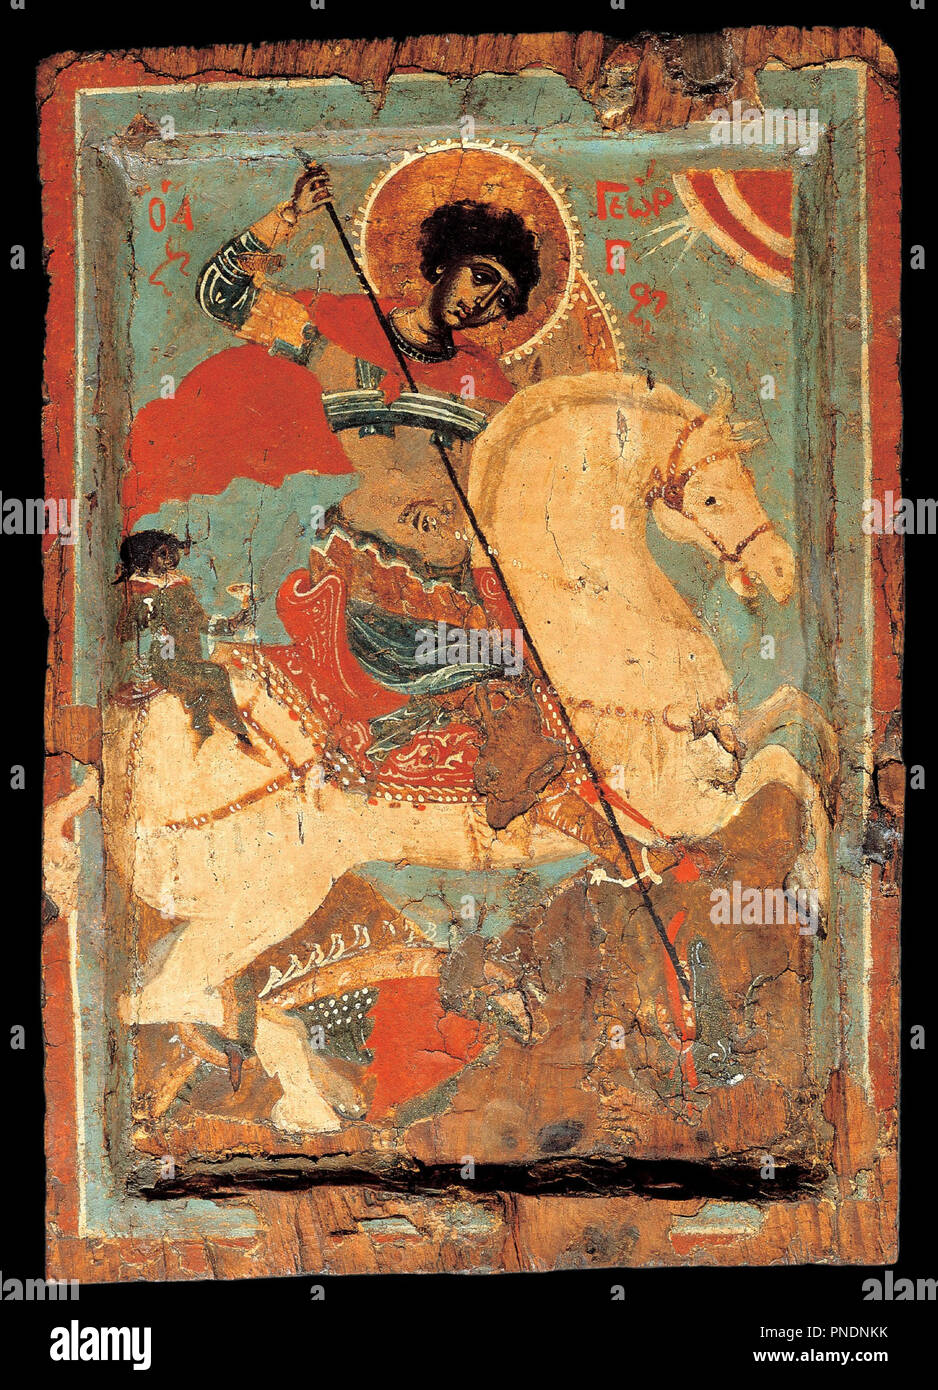 St George the dragon-slayer on horseback. Date/Period: 1550 - 1599. Icon. Height: 192 mm (7.55 in); Width: 203 mm (7.99 in). Author: Macedonian workshop. Stock Photo